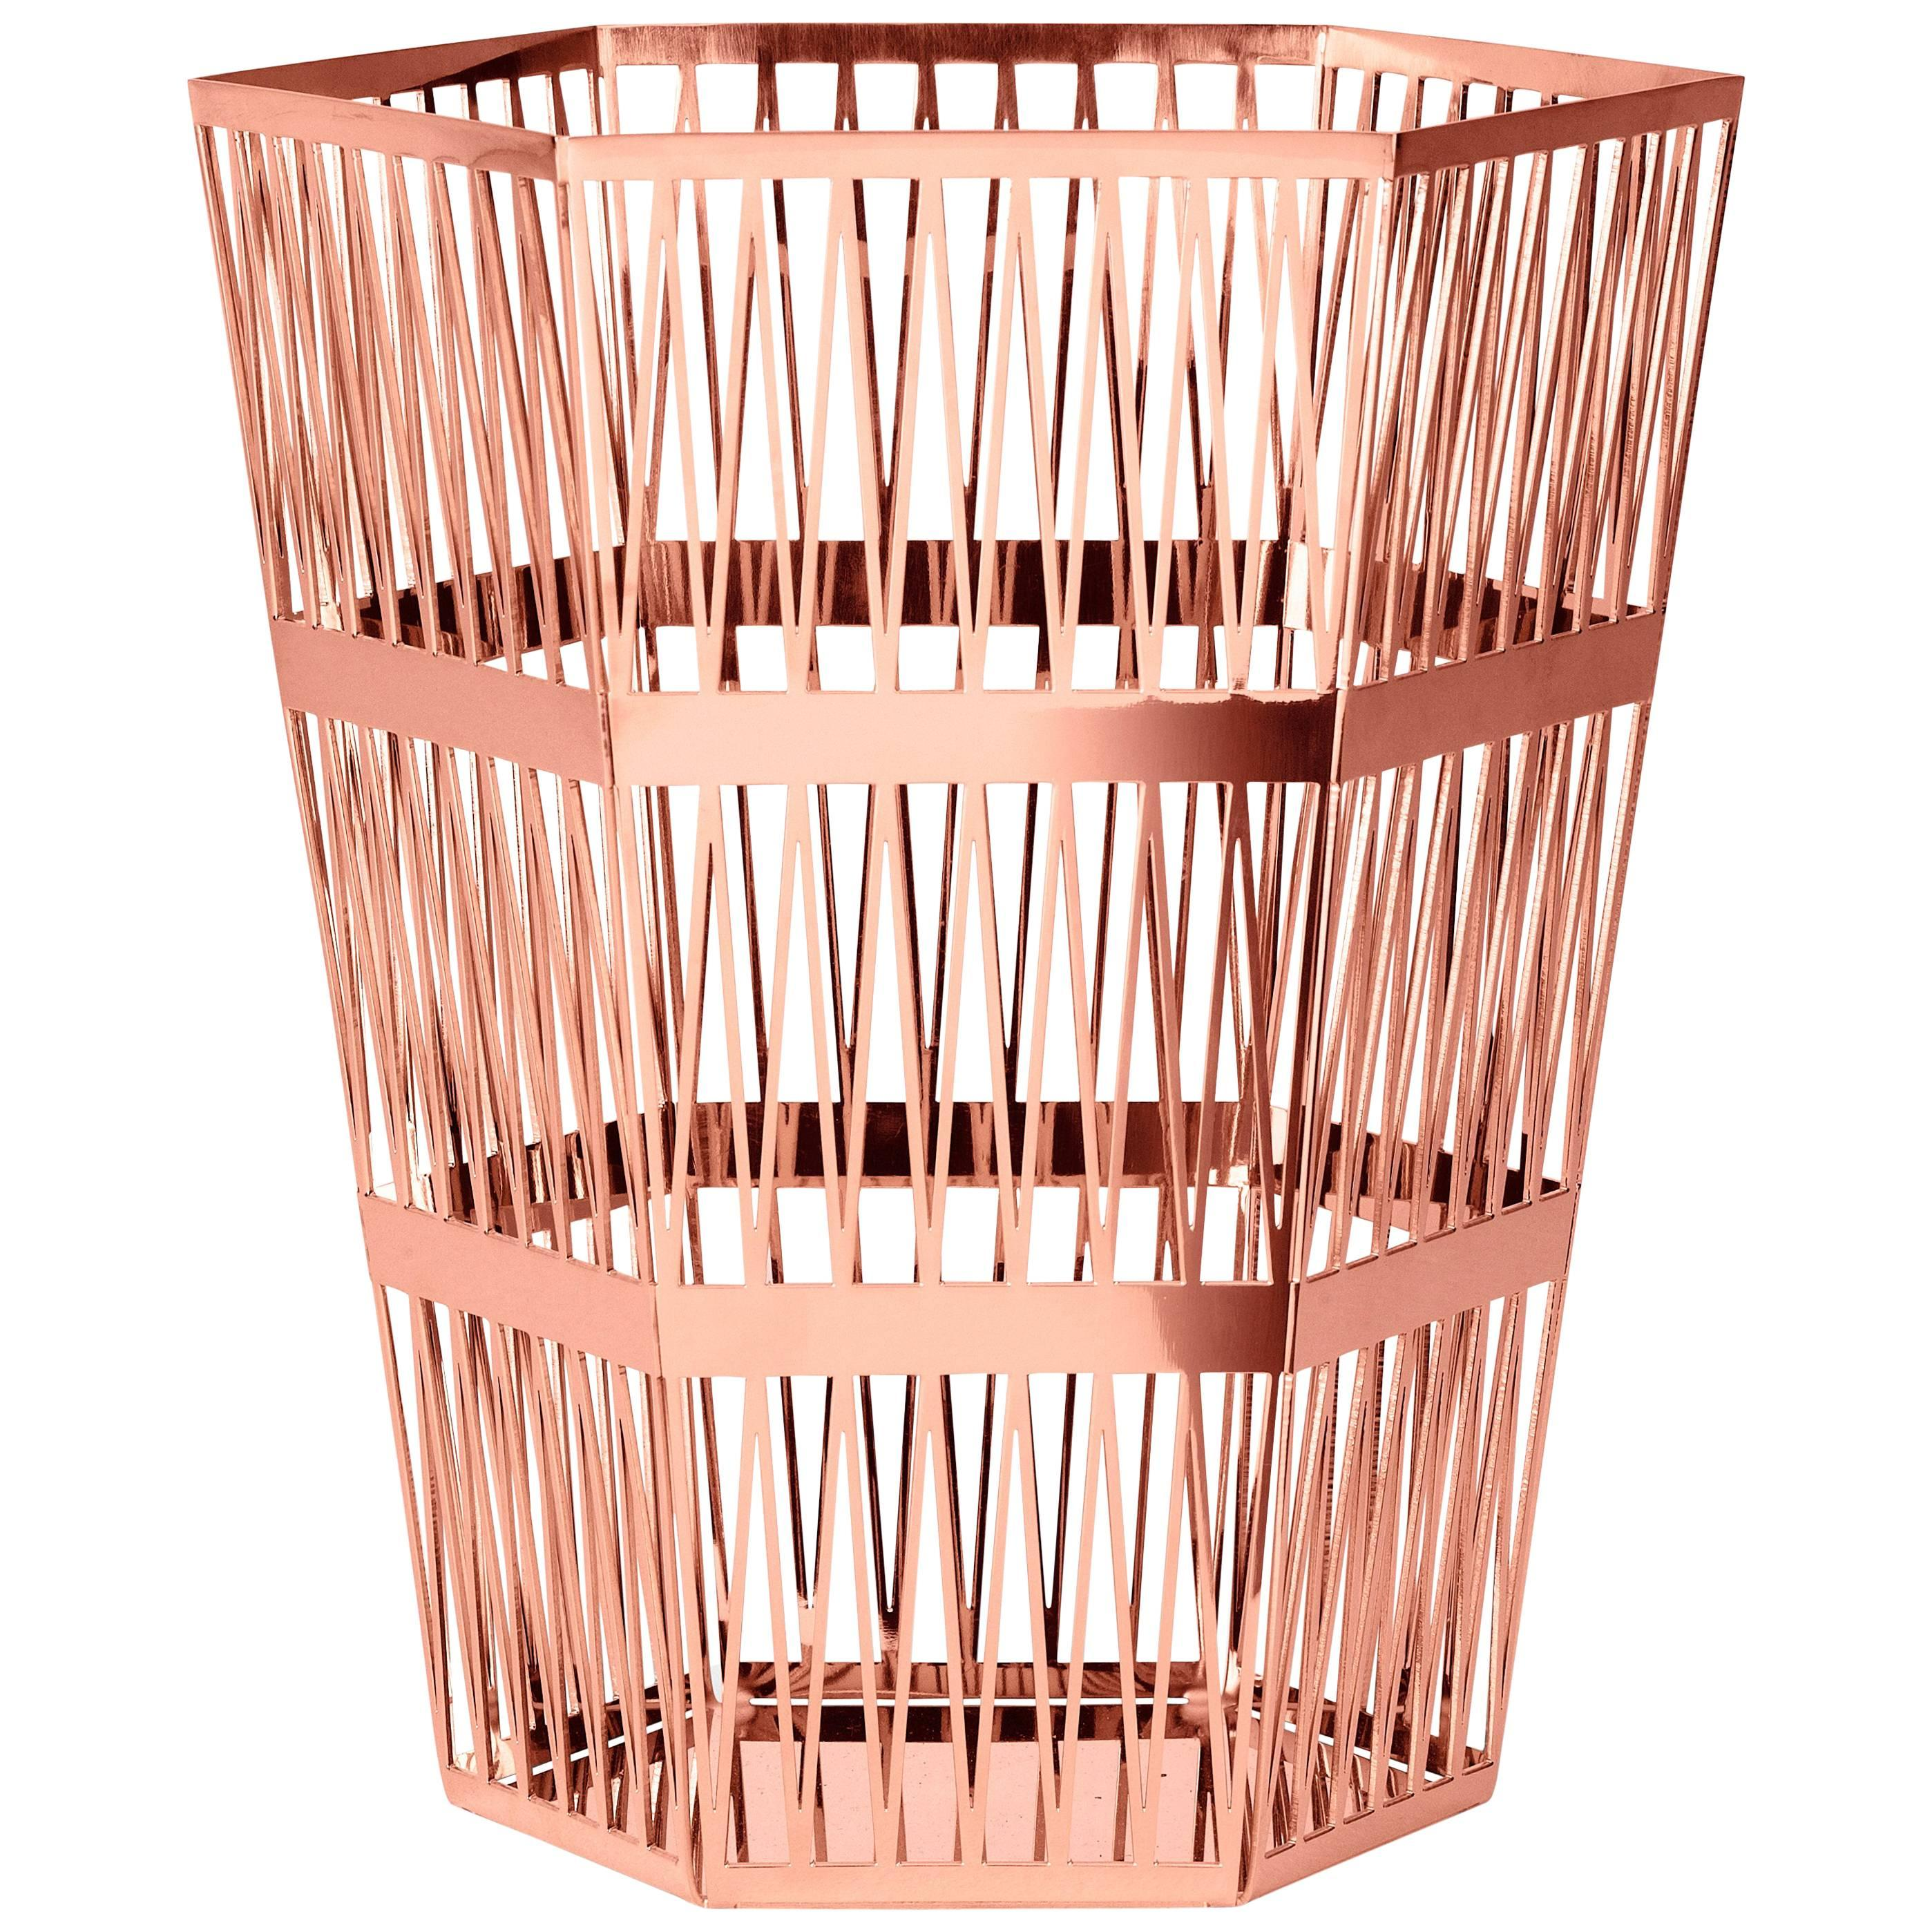 Ghidini 1961 Tip Top Large Paper Basket in Rose Gold Finish